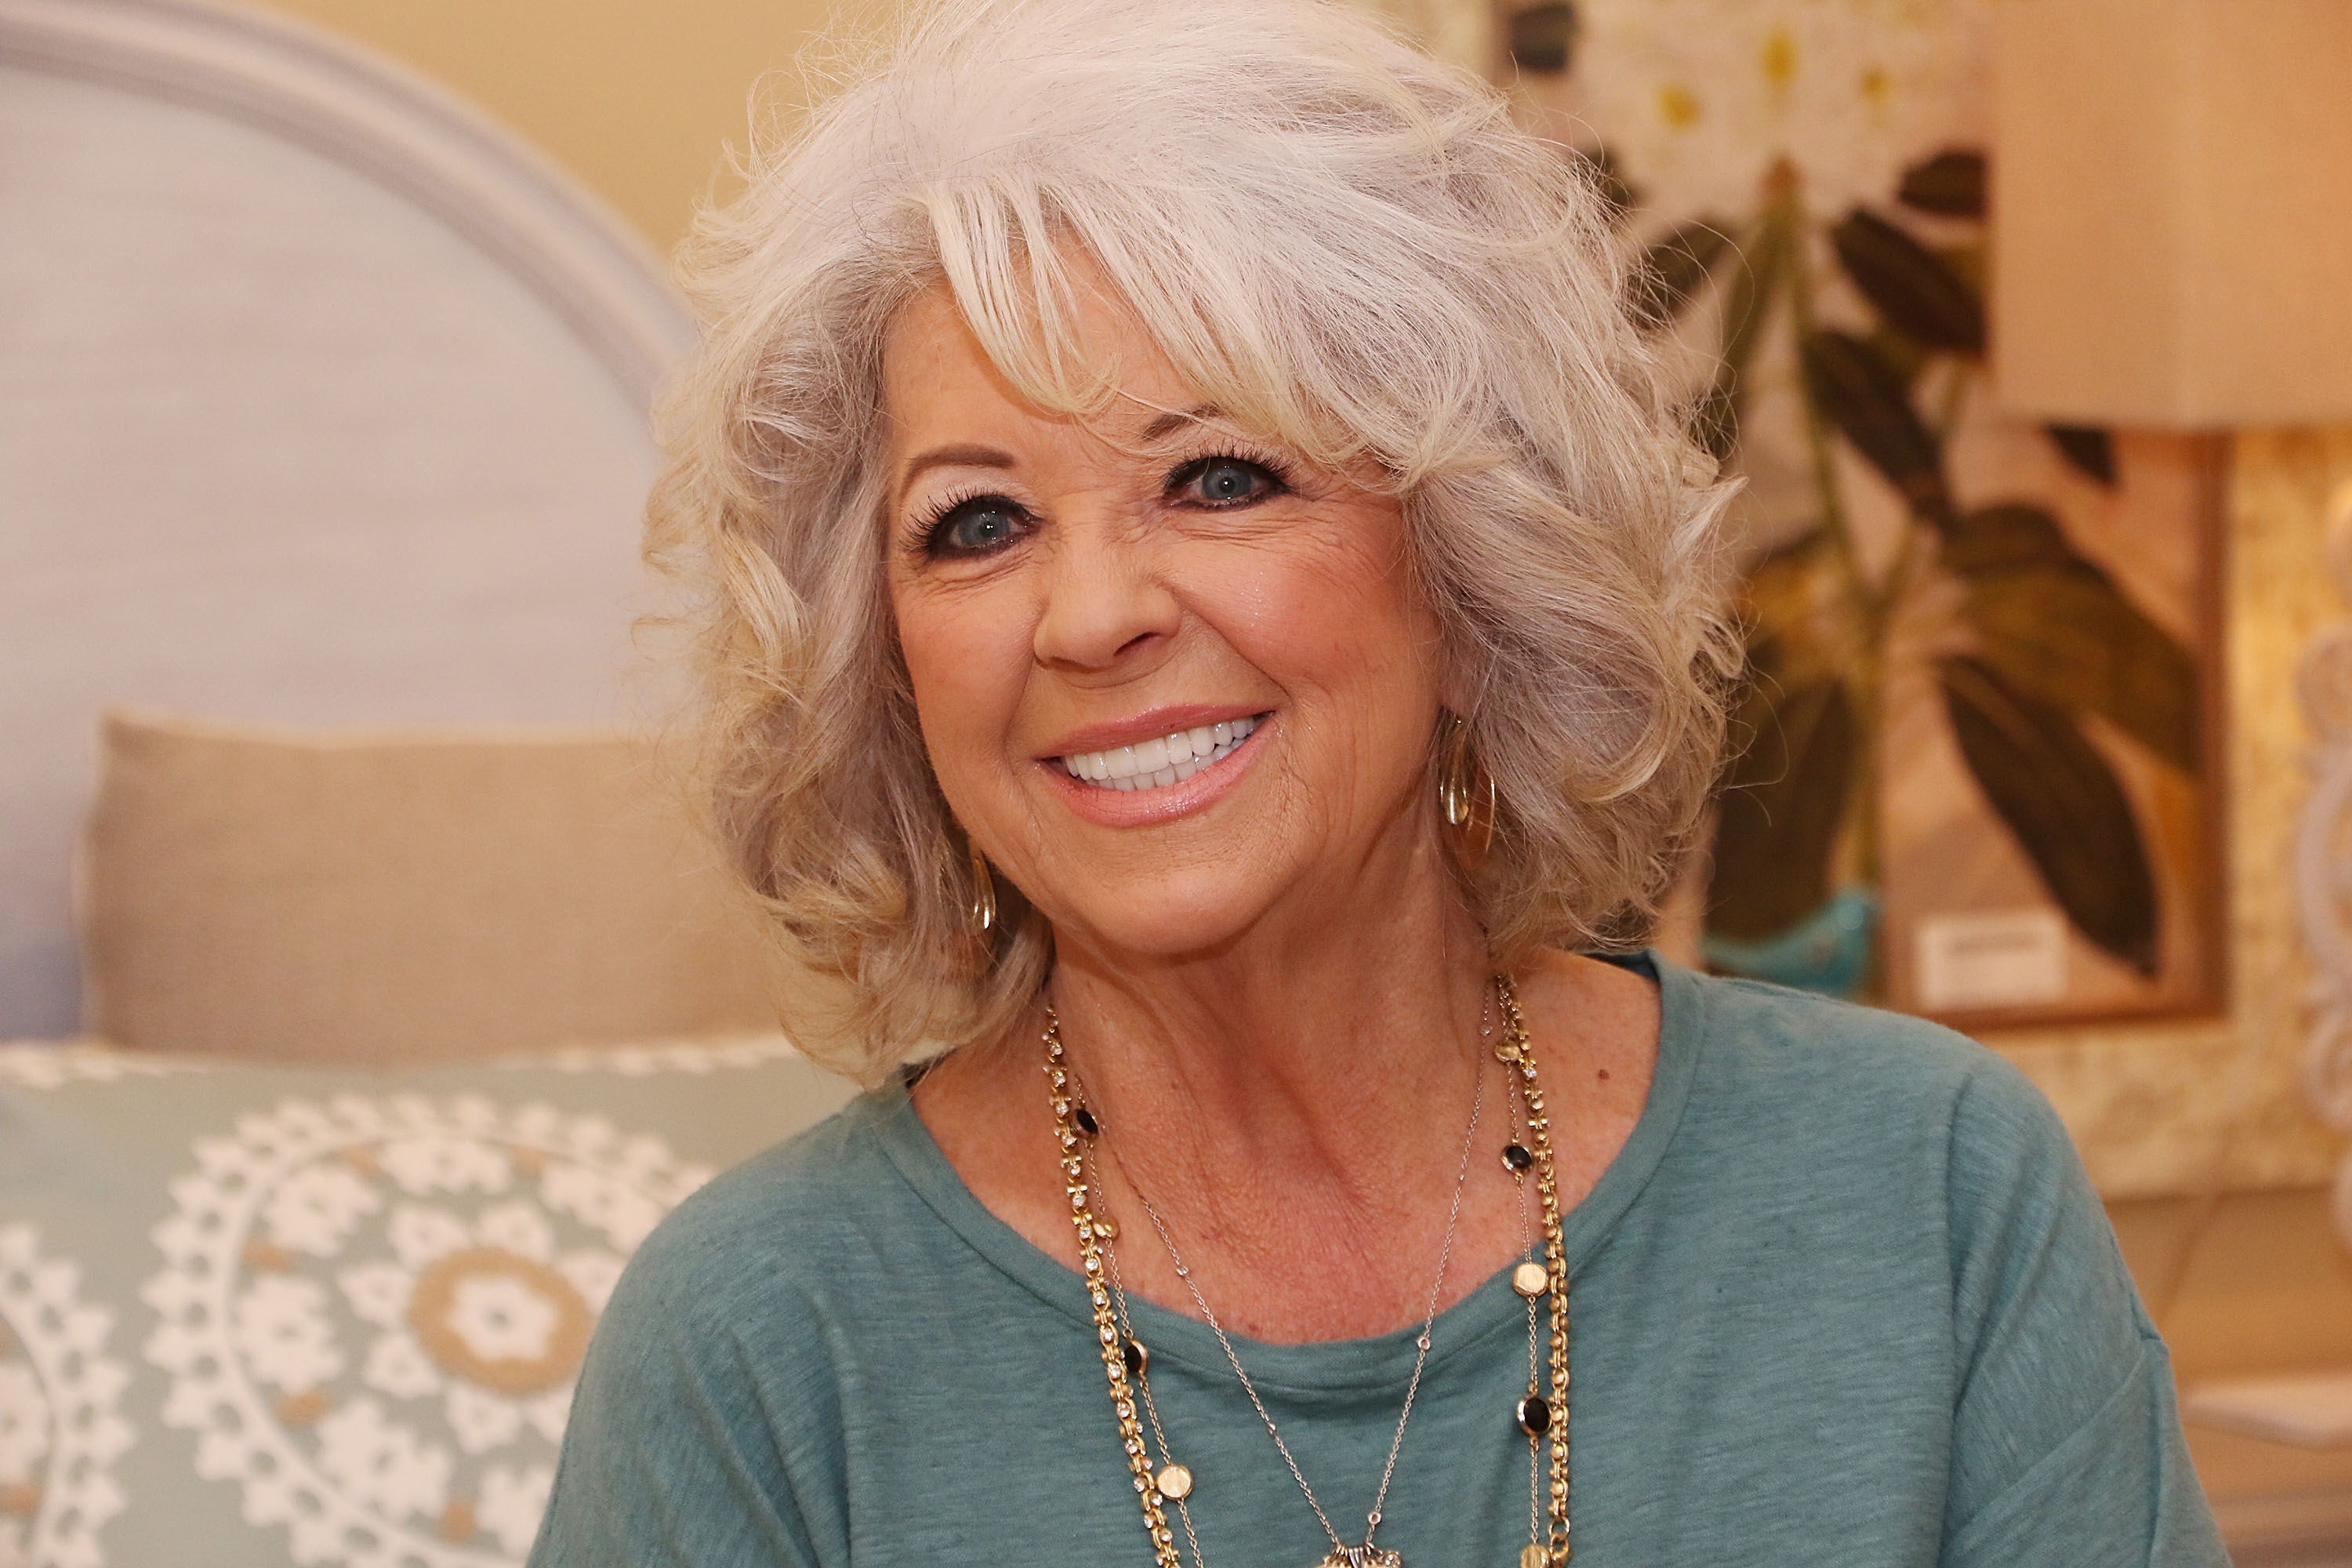 Paula Deen signs copies of her book during Cuts the Fat Book Tour on January 30, 2016. | Source: Getty Images